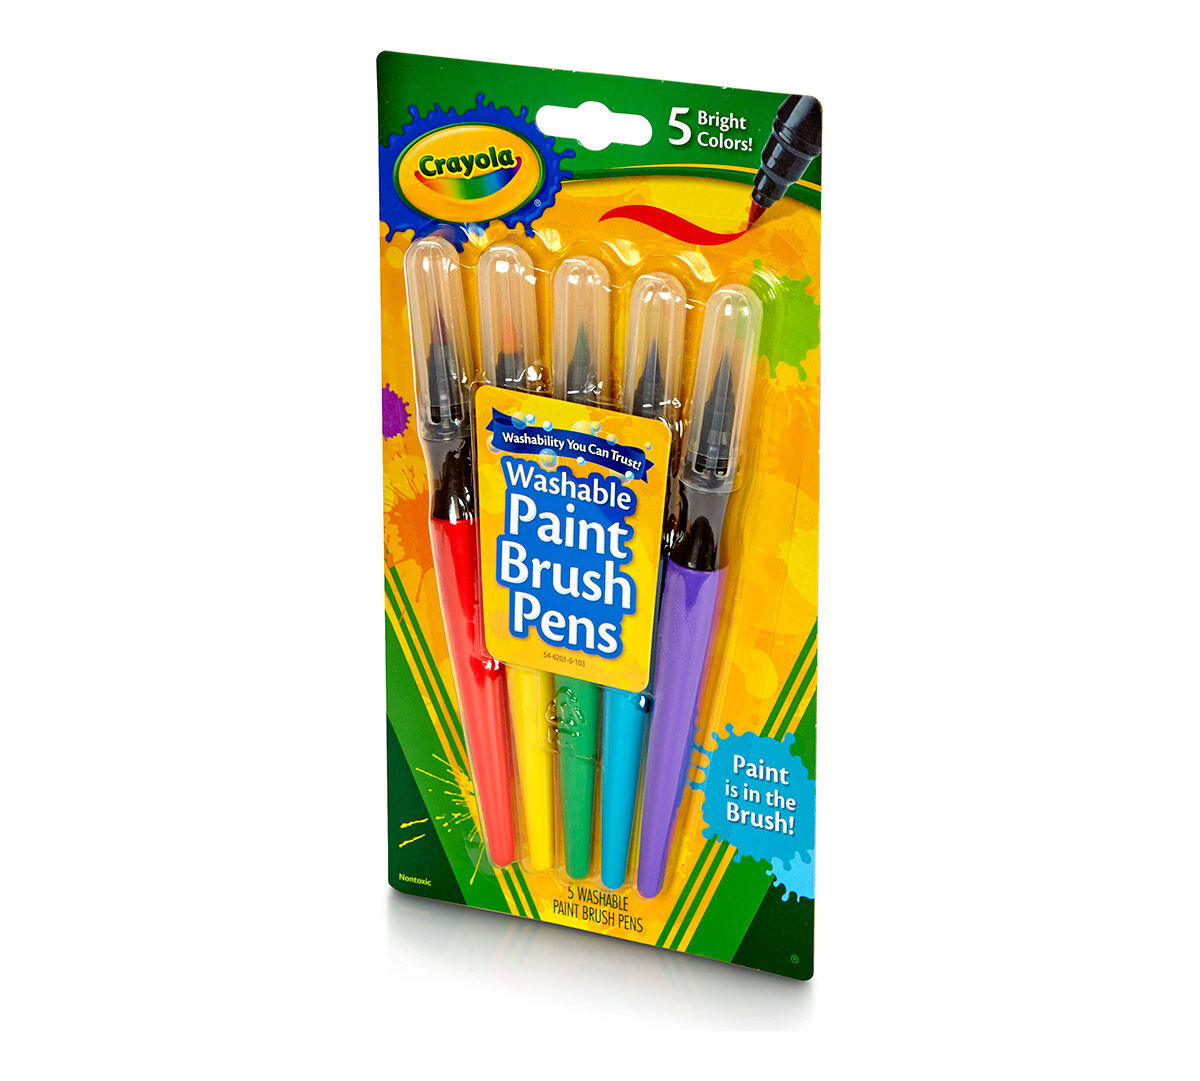 crayola paint brush pens how to use